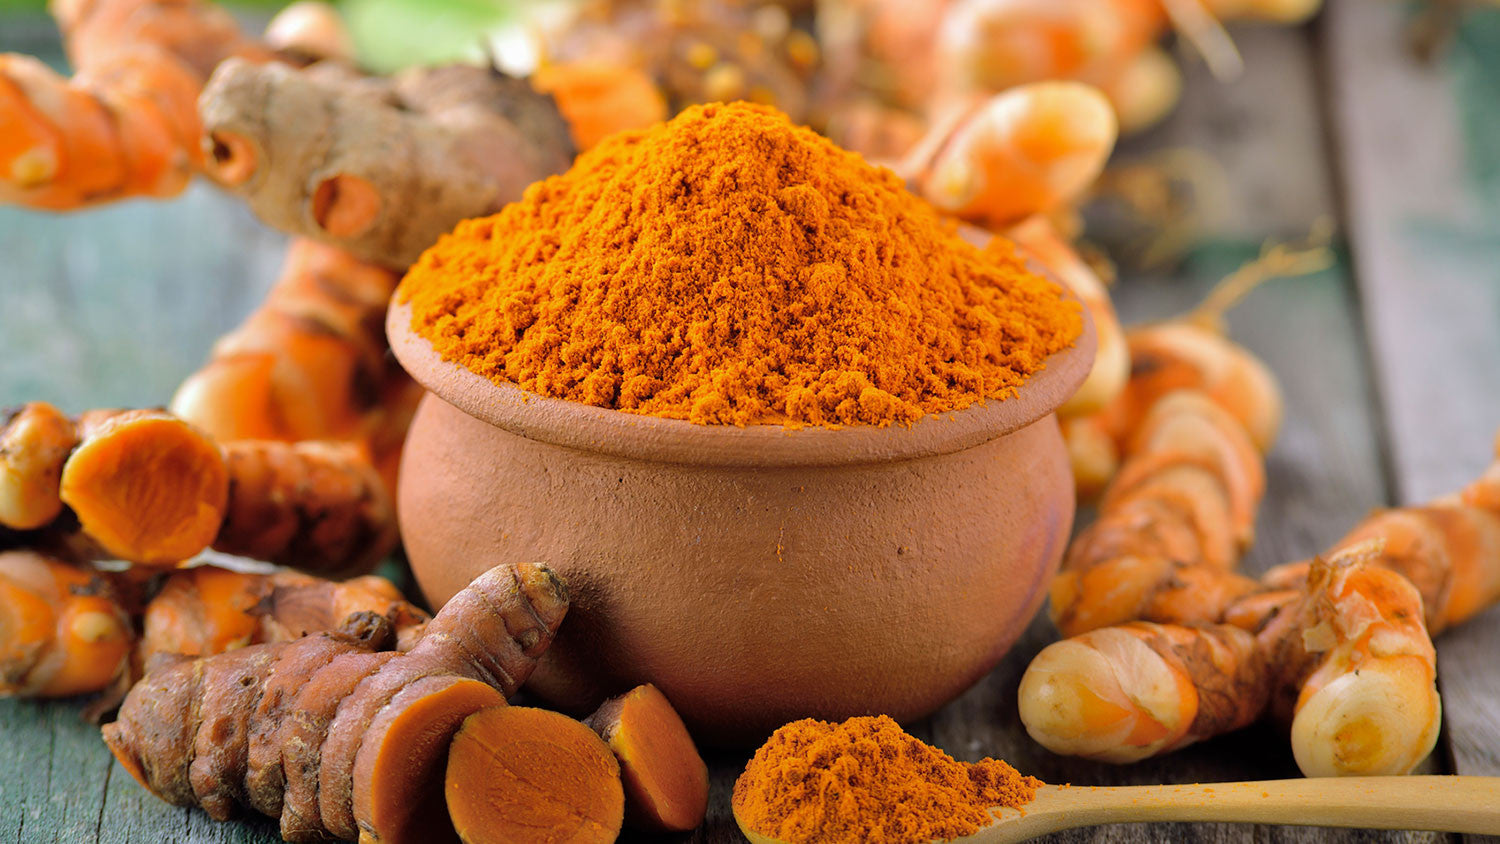 How to consume Turmeric